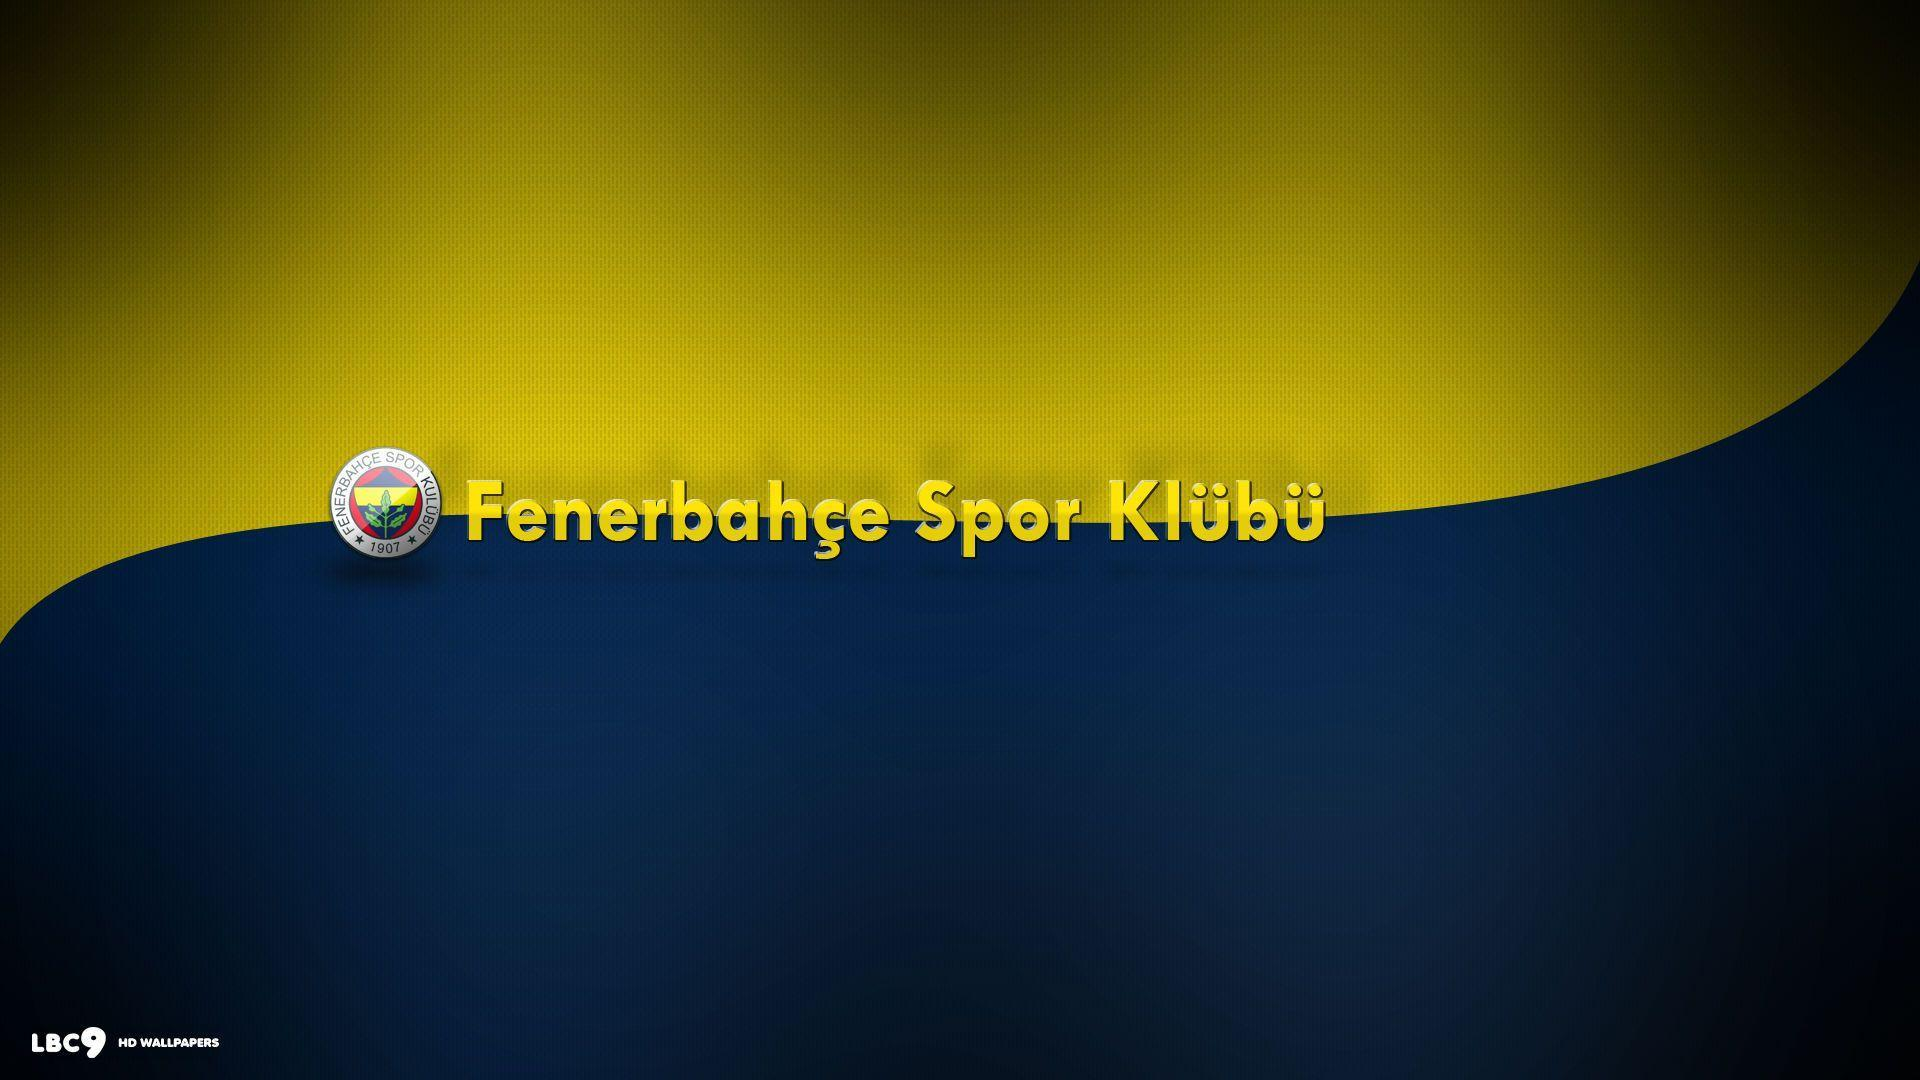 fenerbahce wallpaper 1/2 | clubs hd backgrounds